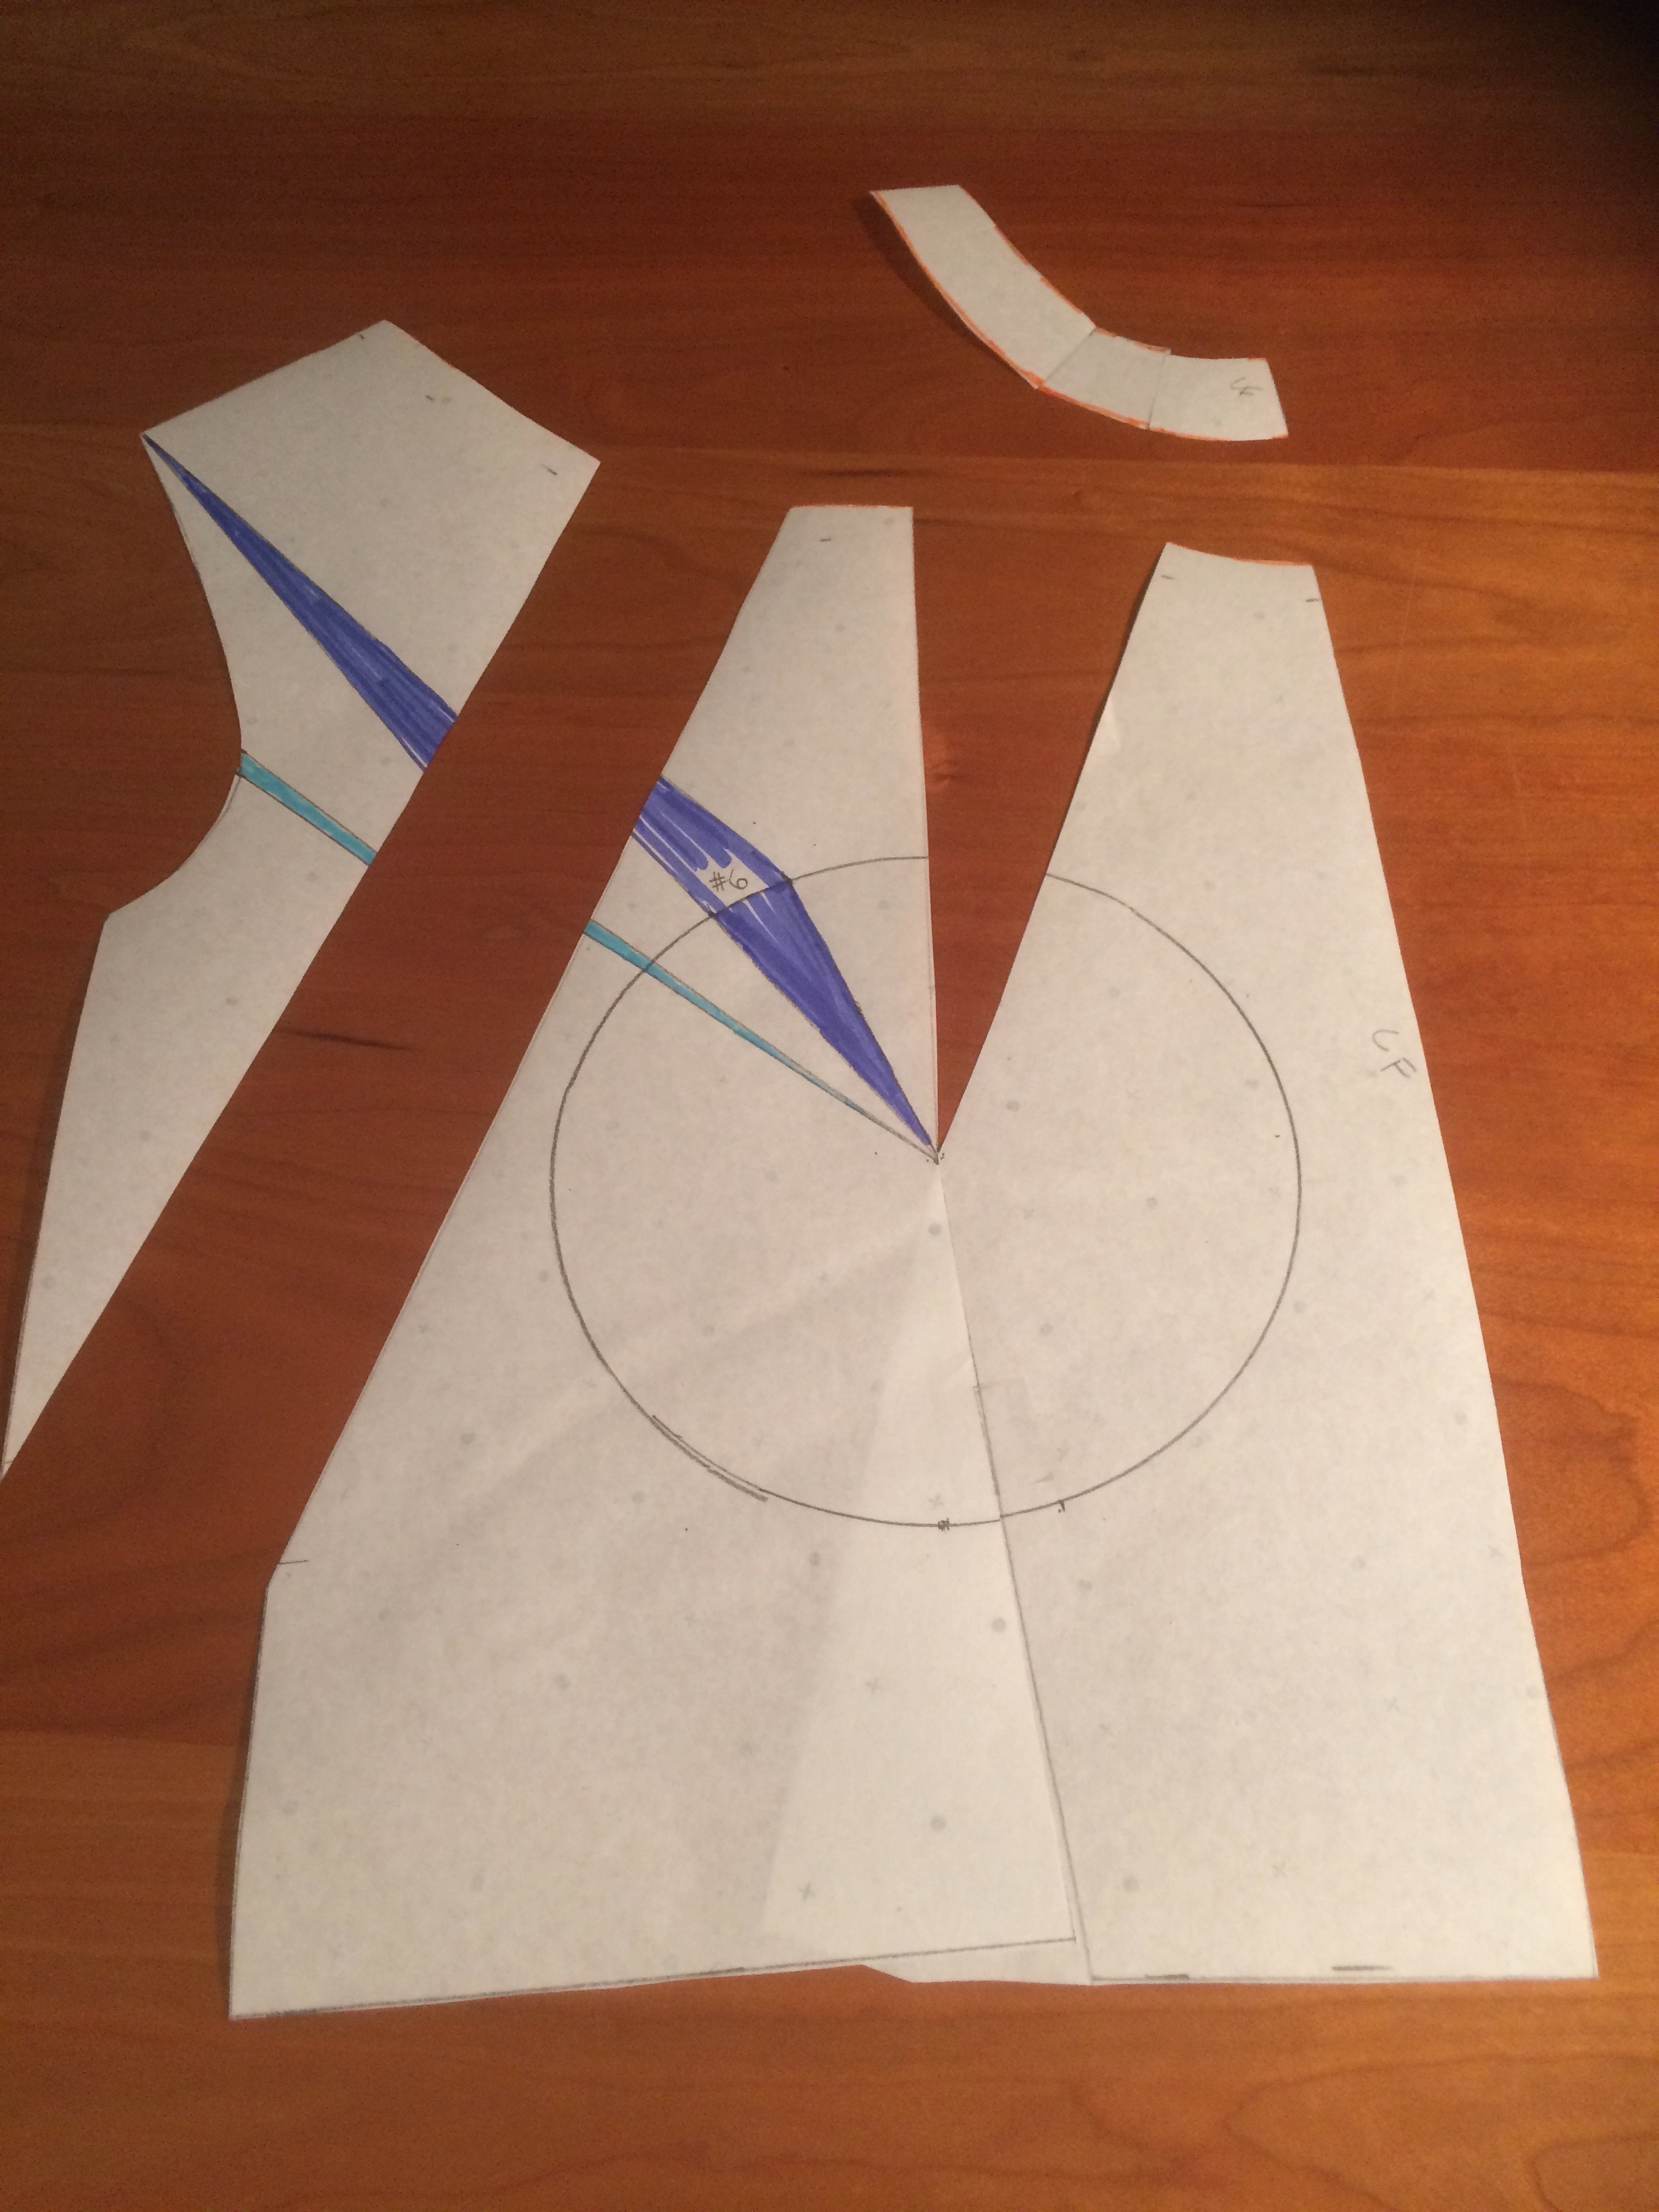 Transfer waist dart and create halter style line